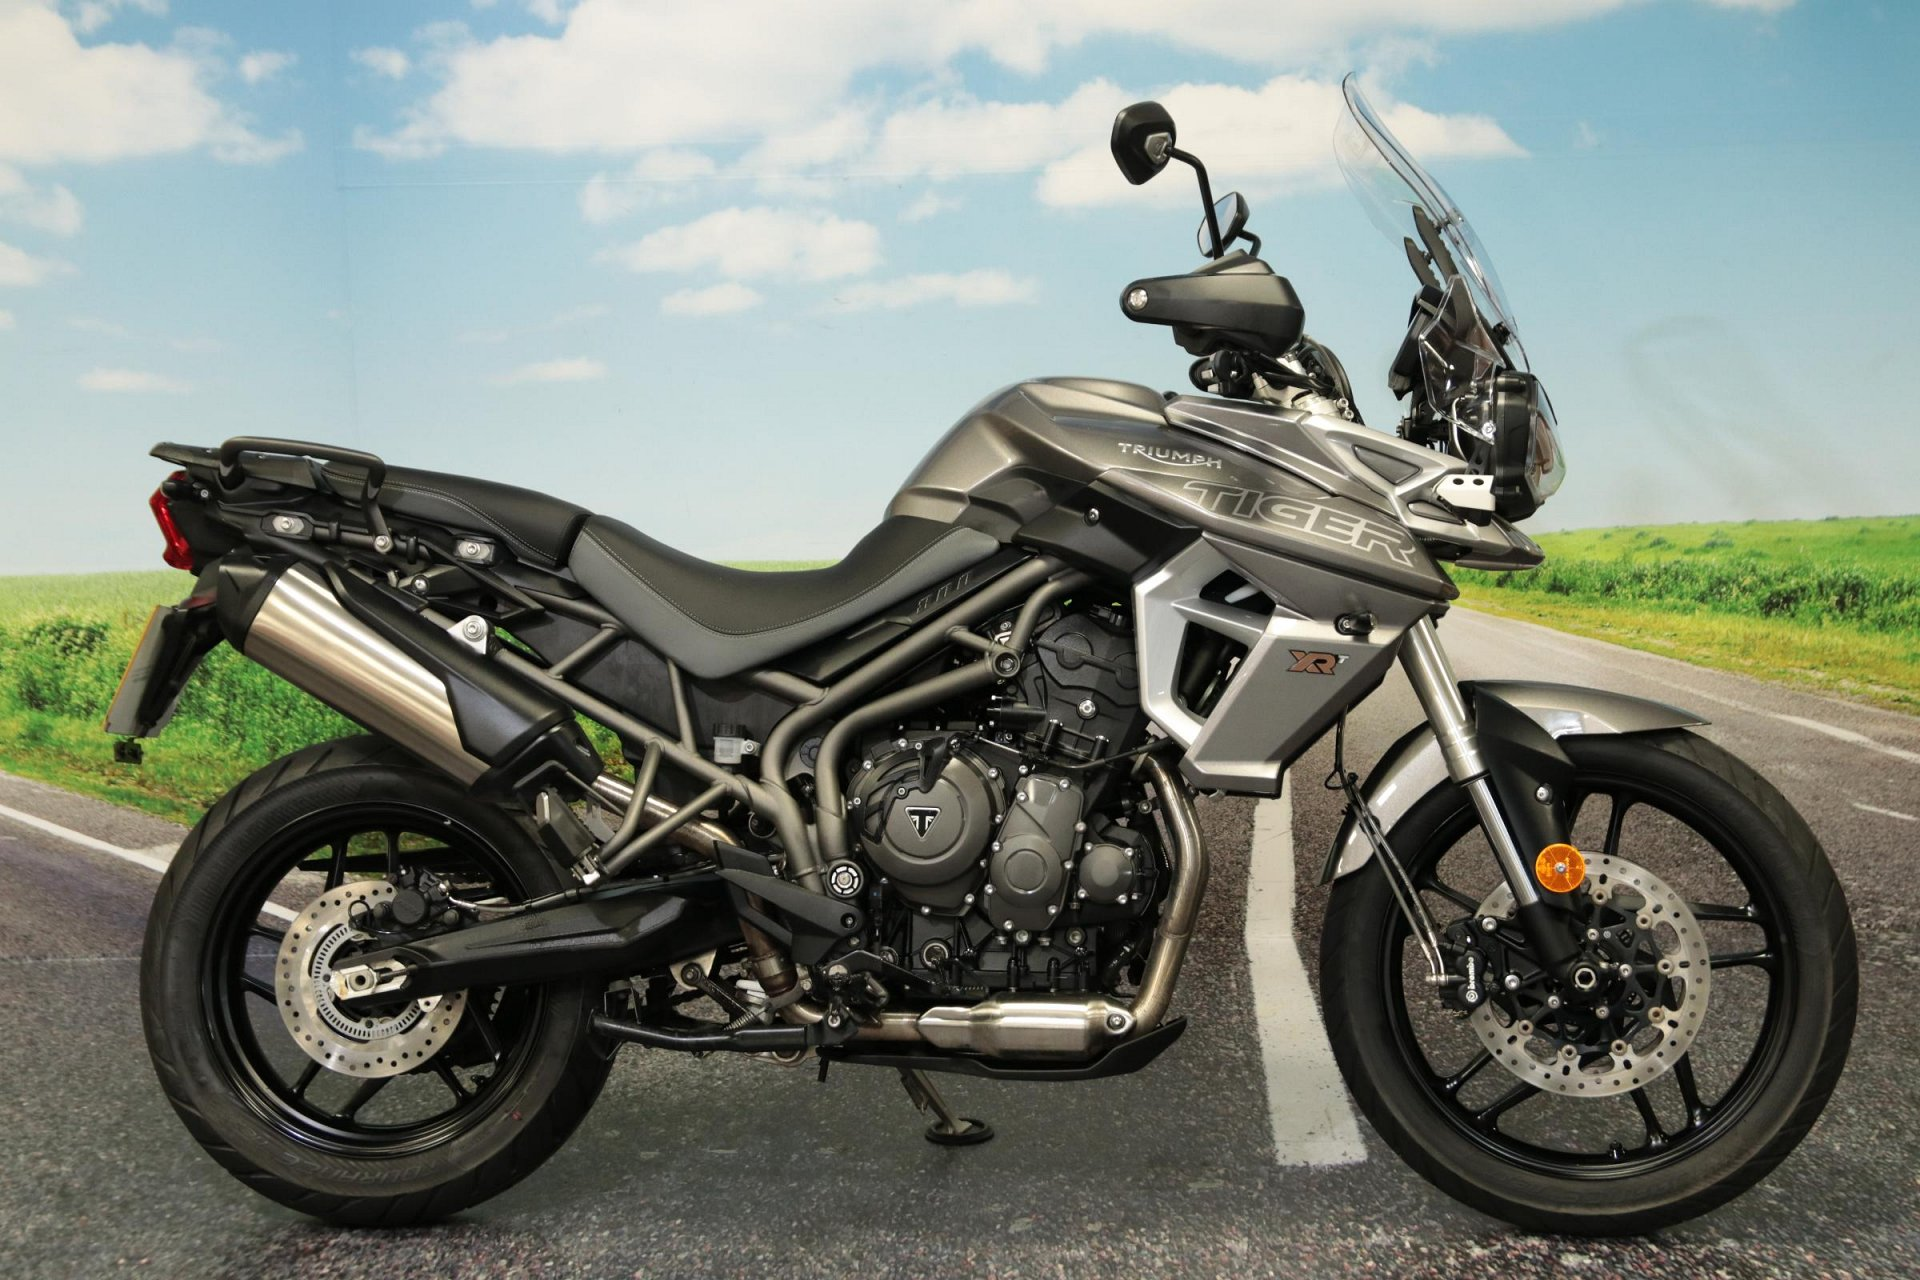 2018 Triumph Tiger 800 XRT for sale in South Wales